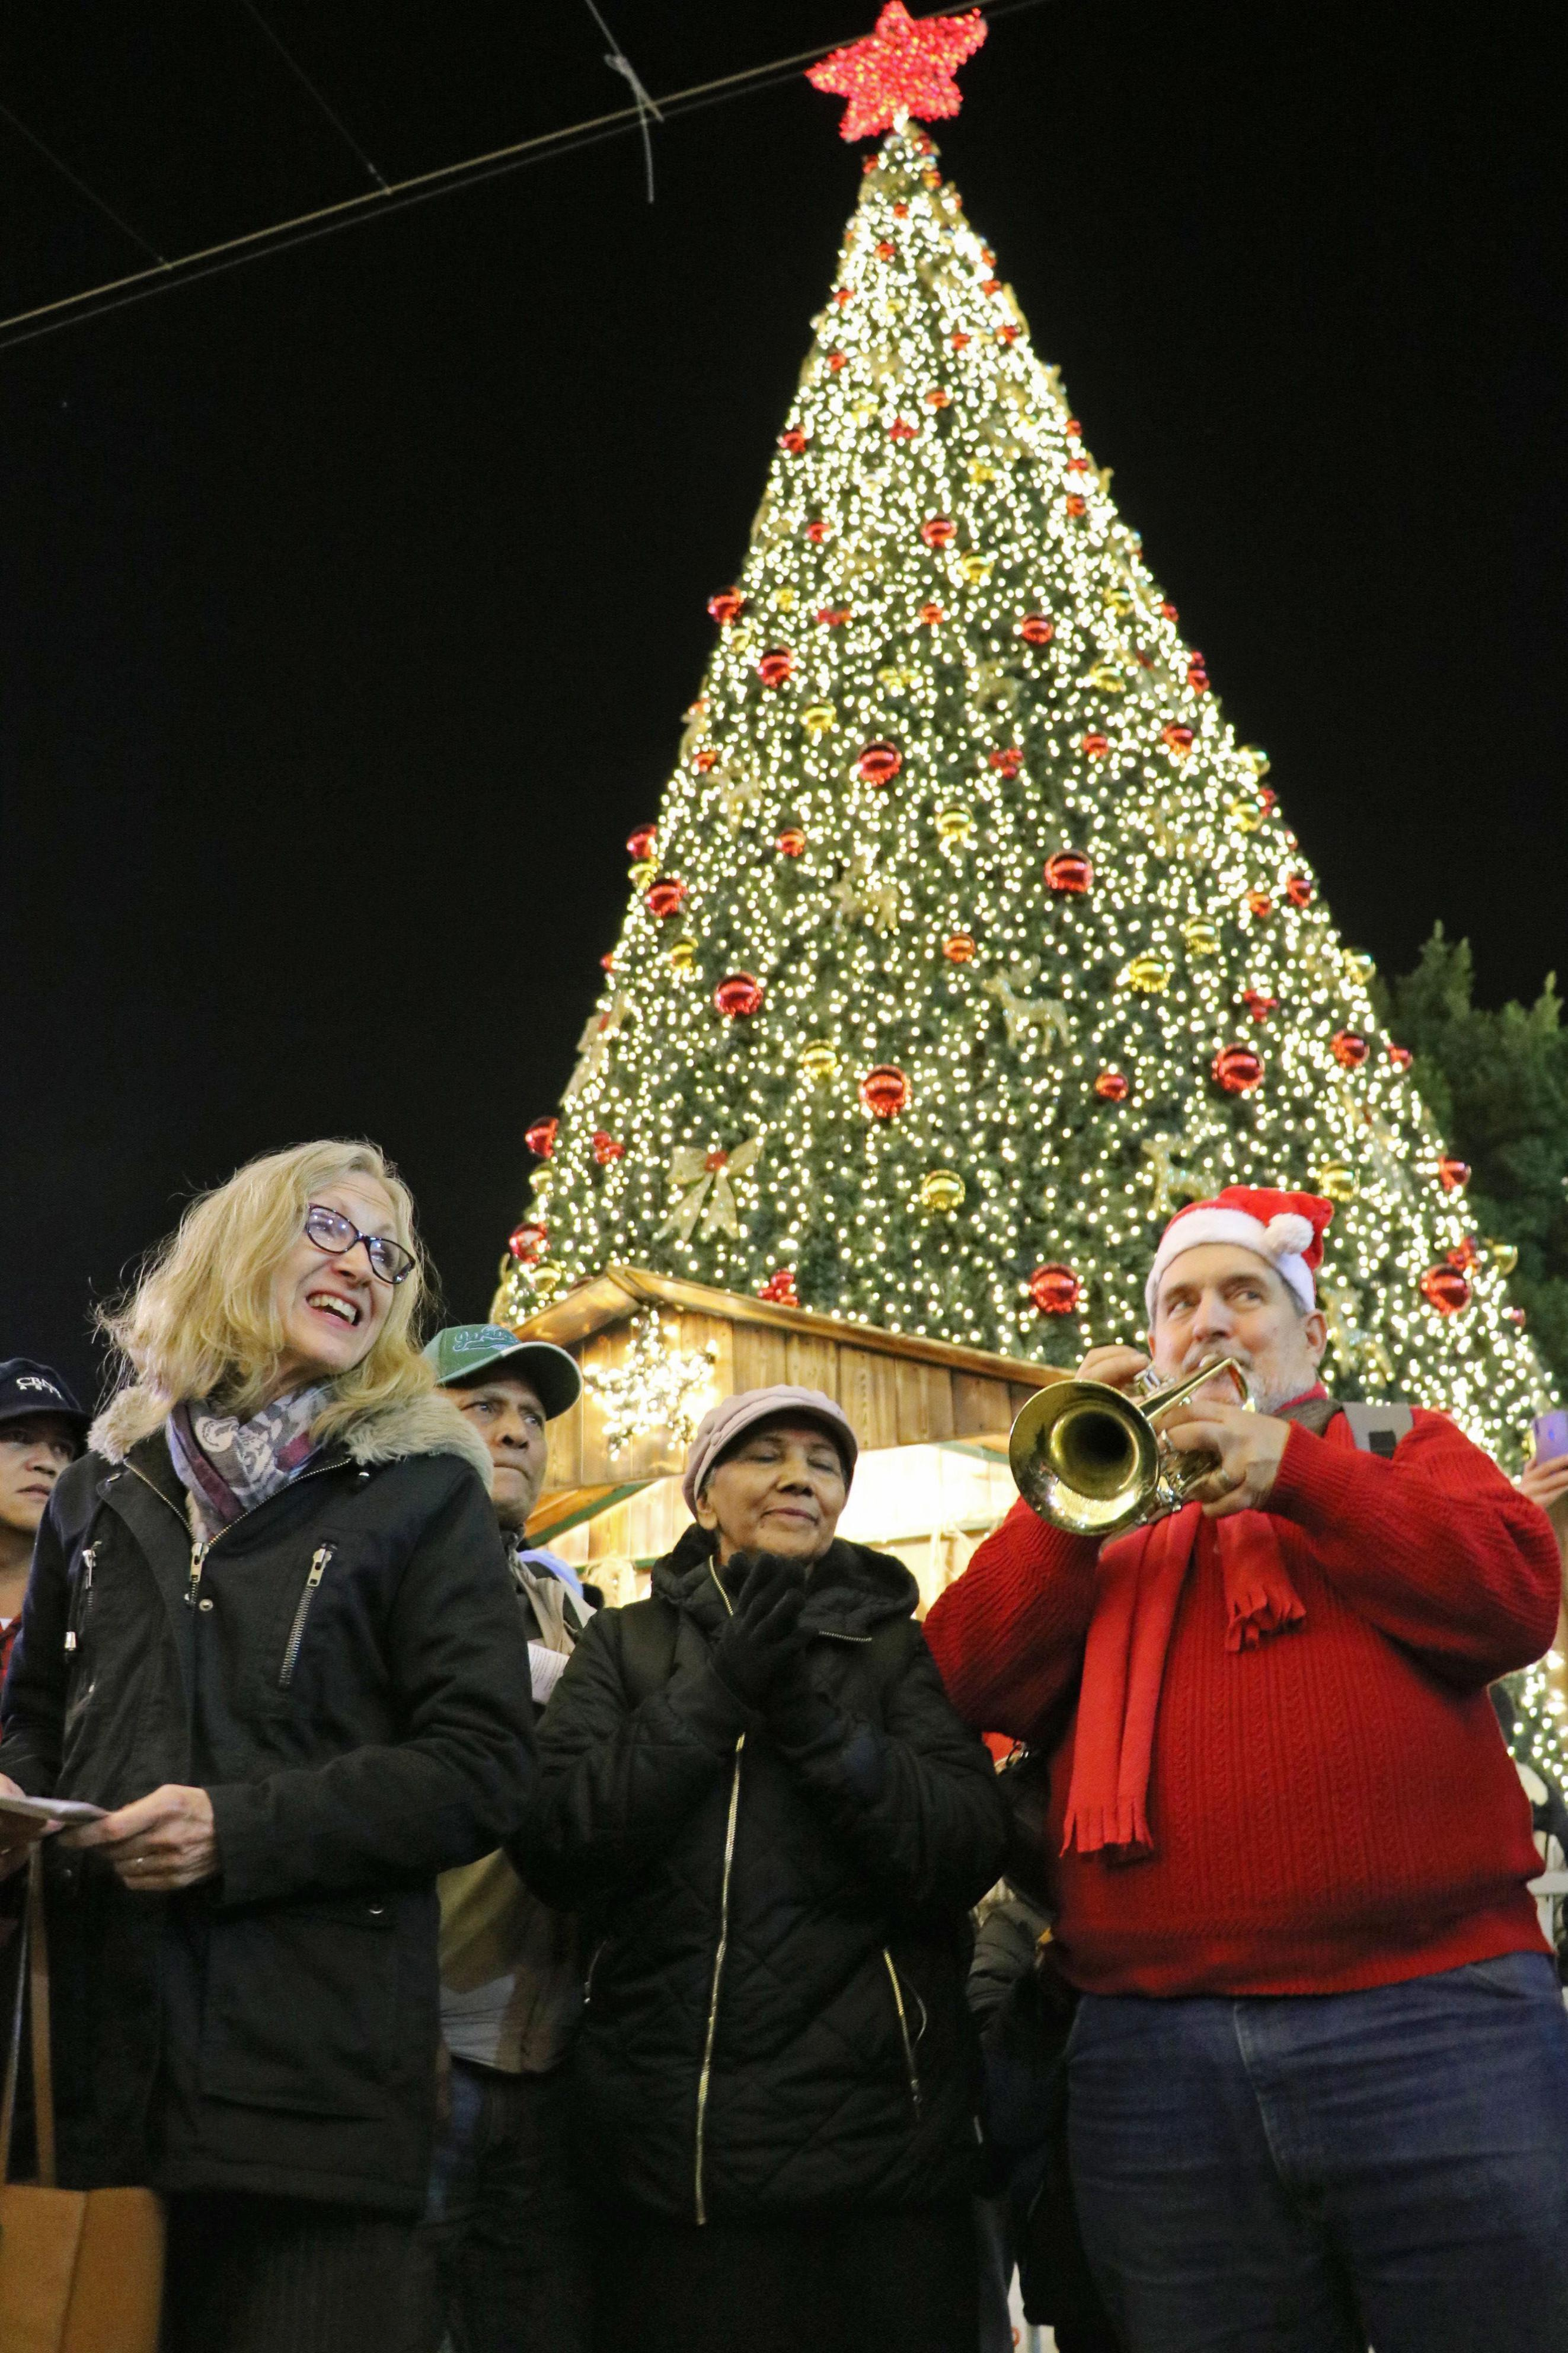 People sing in front of a Christmas tree near the Church of the Nativity in Bethlehem on Dec. 24, 2019. (Kyodo via AP Images) ==Kyodo